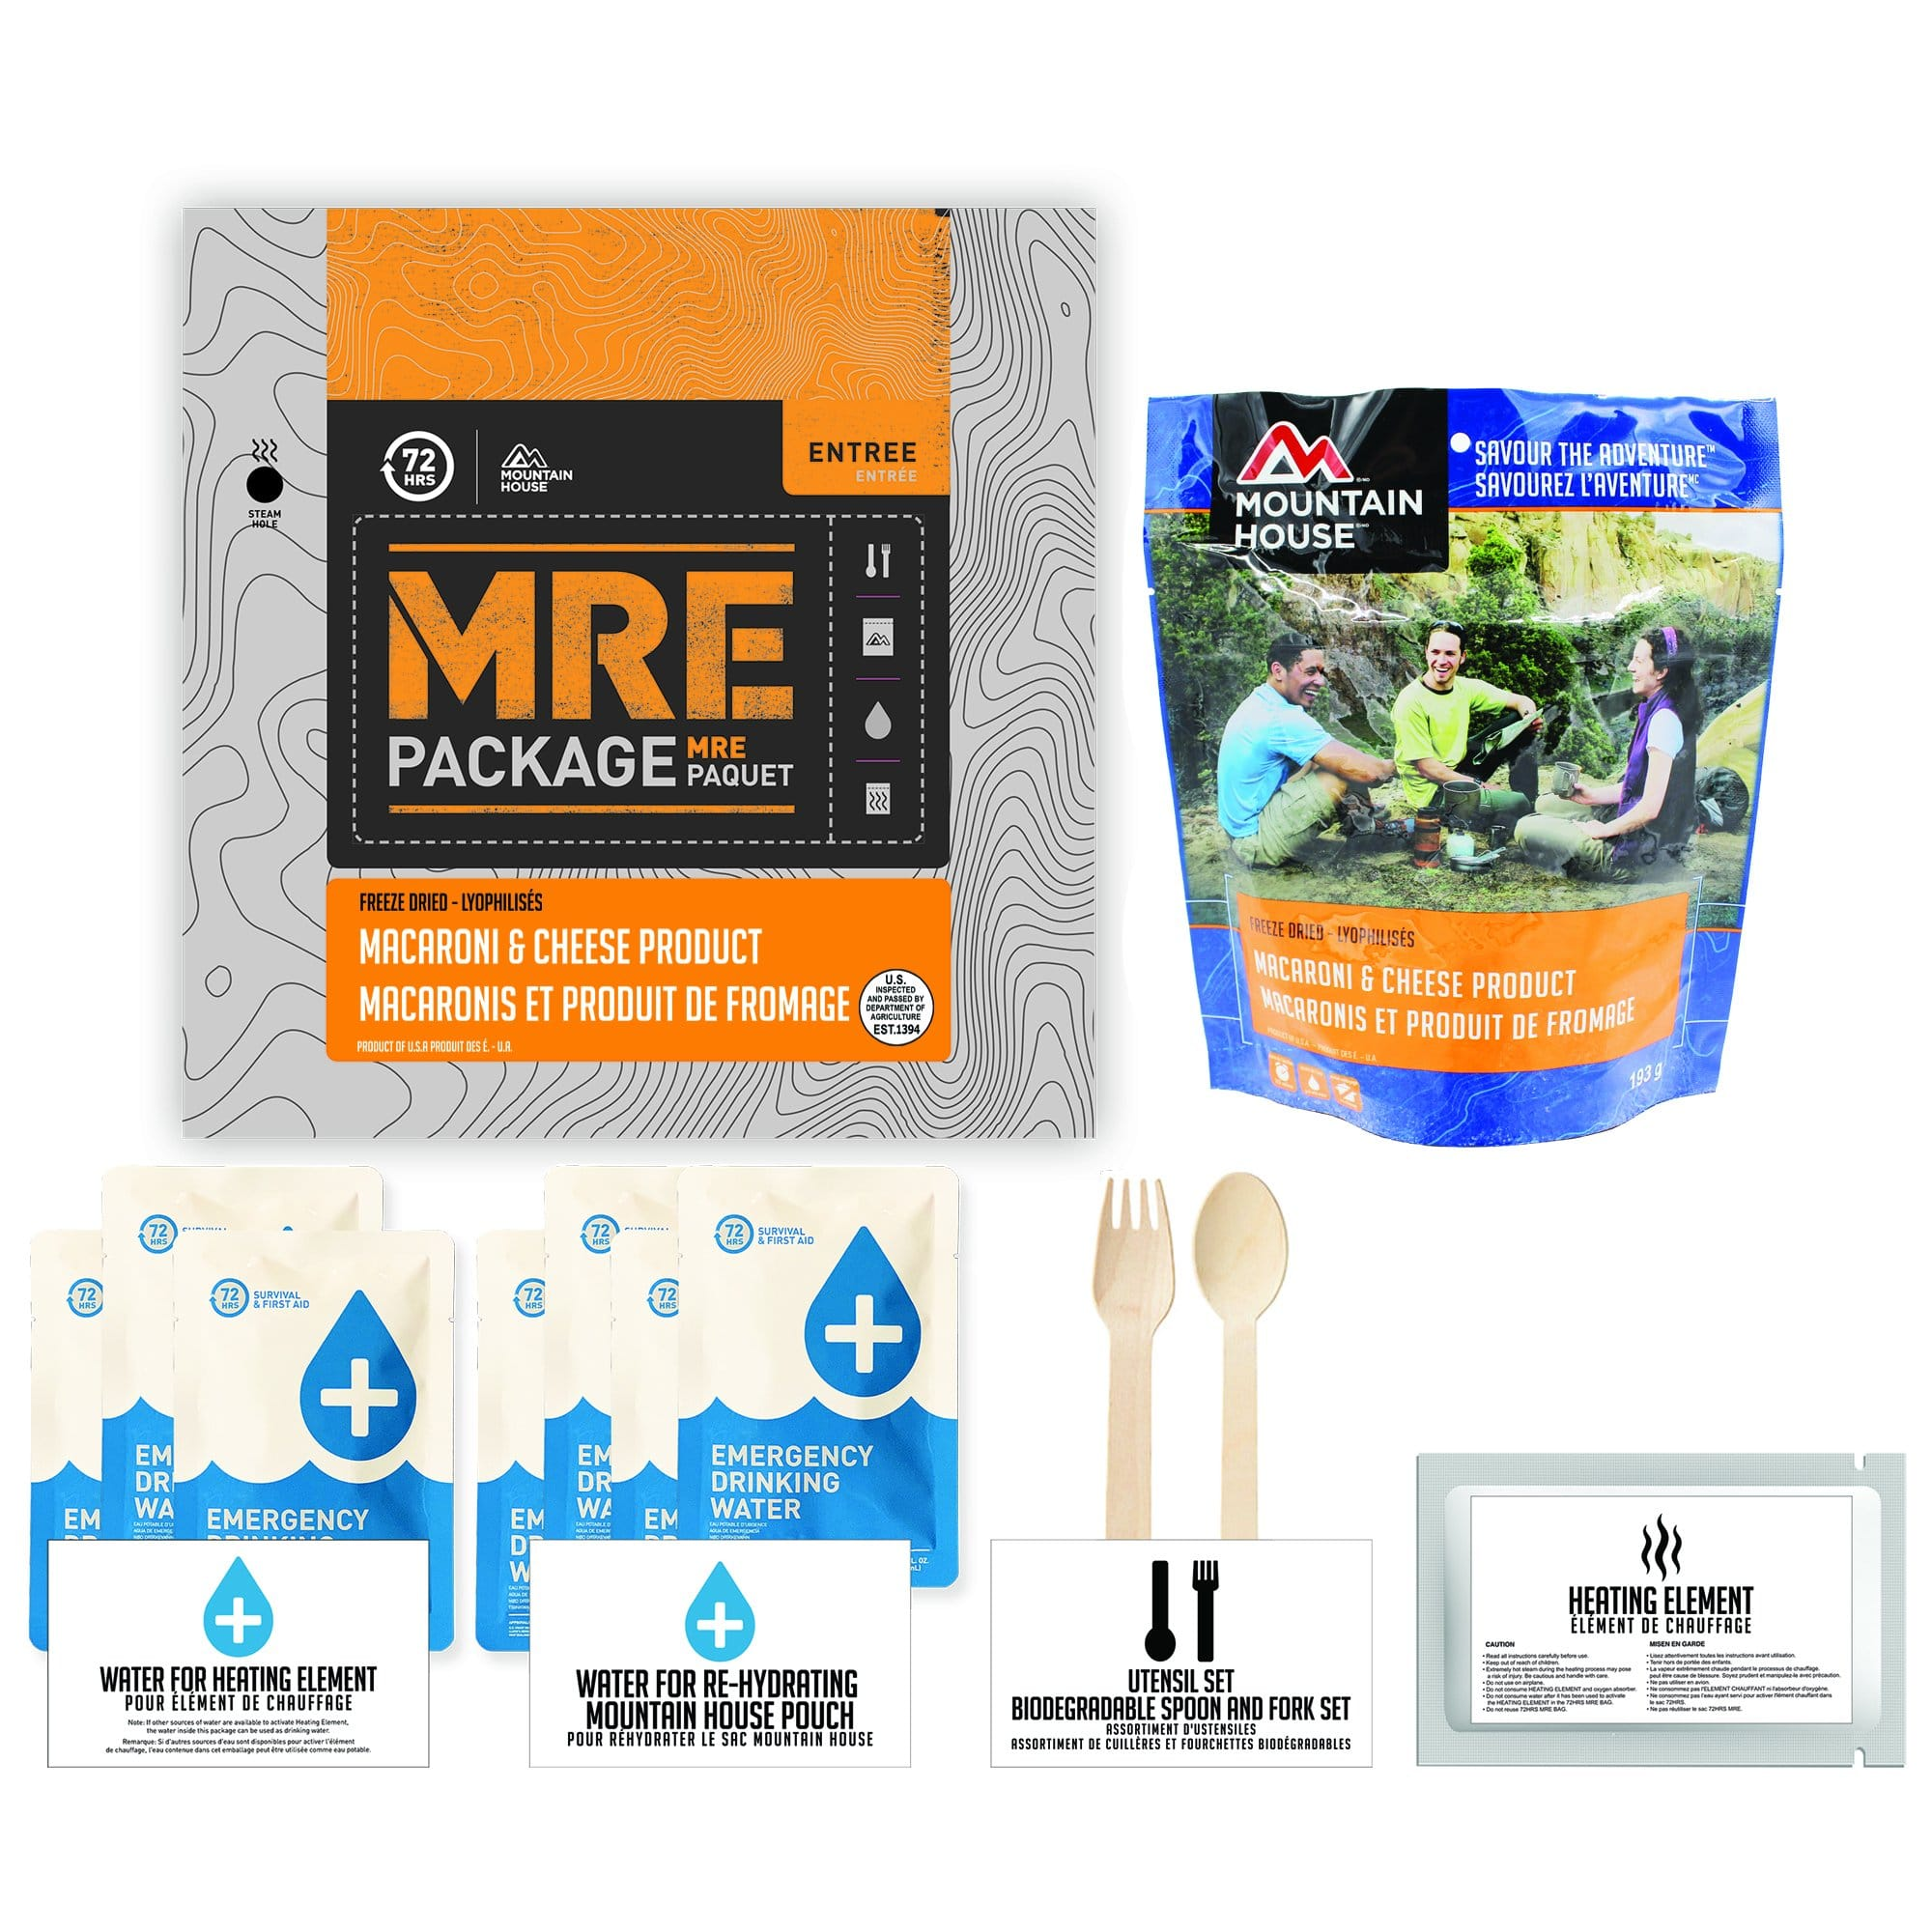 72 HOURS MRE Package Mountain House Mac and Cheese Pouch - Emergency Food Pack